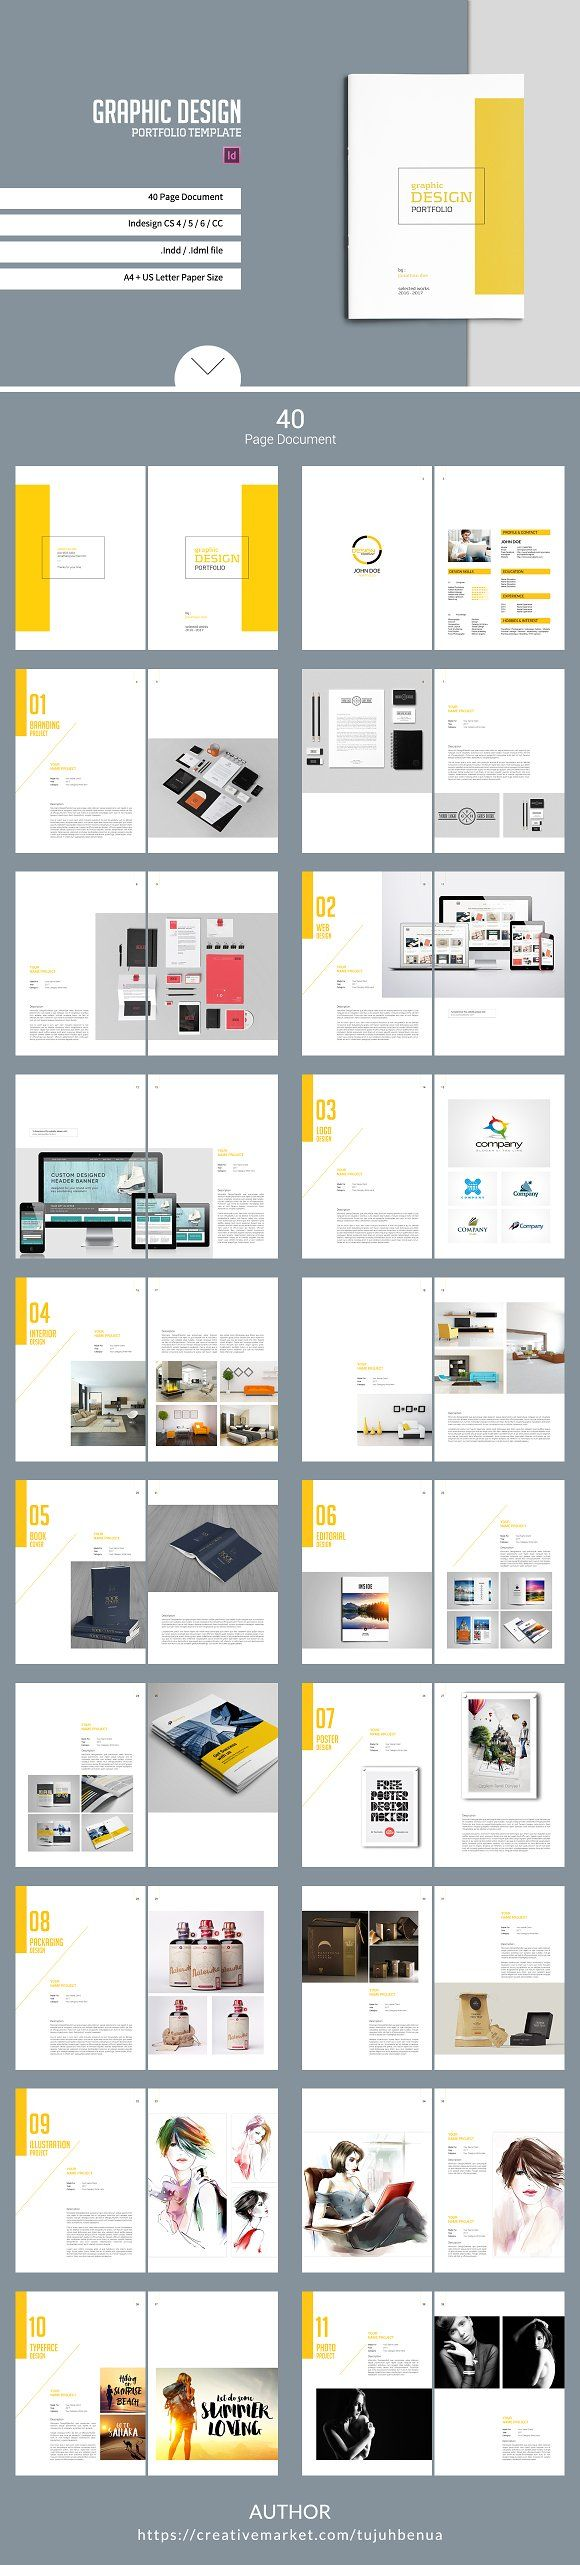 graphic design portfolio template  creativework247